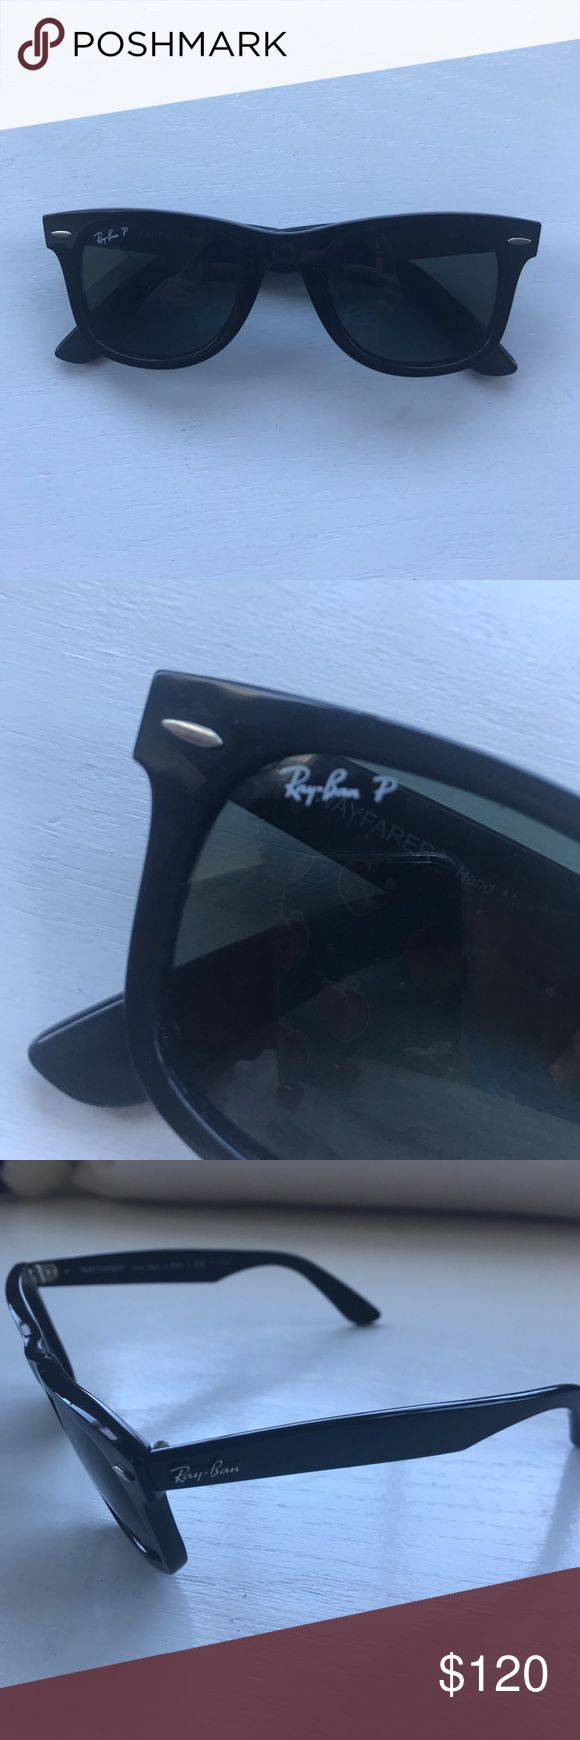 Ray-Ban Wayfarer Polarized Classic black rayban wayfarer. Polarized. Pictures containing model number. VERY gently used and well taken care of. Ray-Ban Accessories Sunglasses